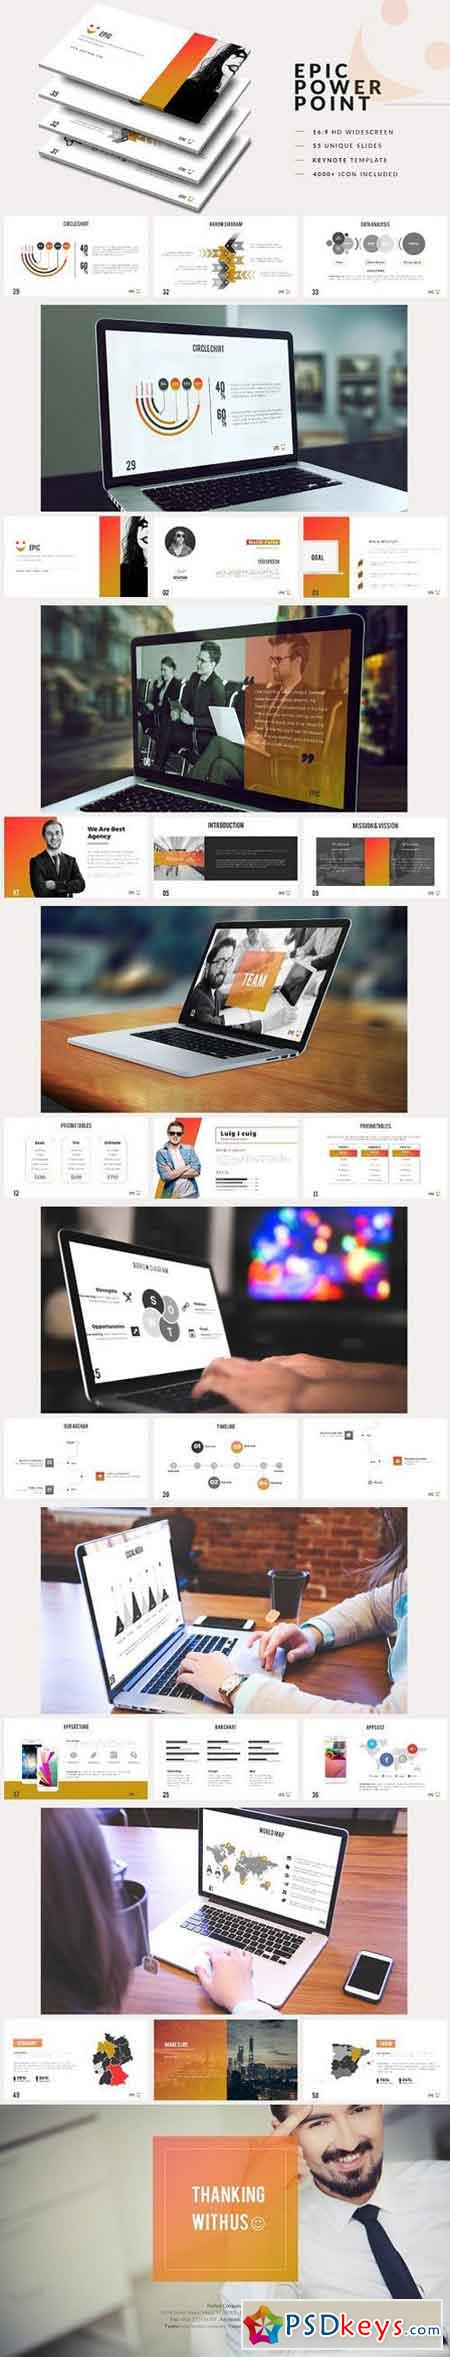 Epic Powerpoint Template 1237474